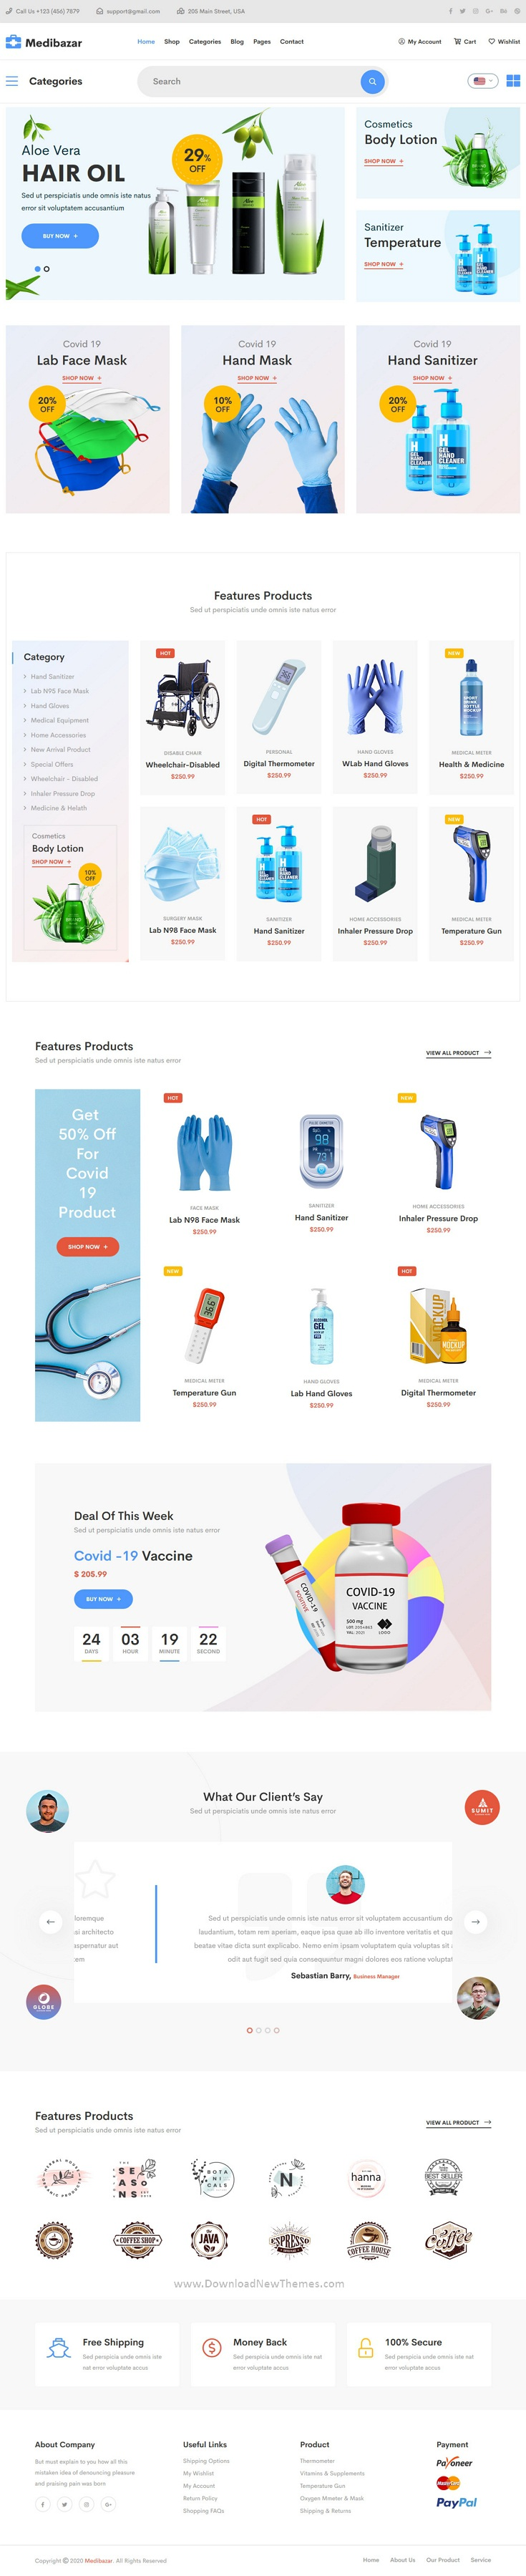 edical Equipment Store eCommerce Template